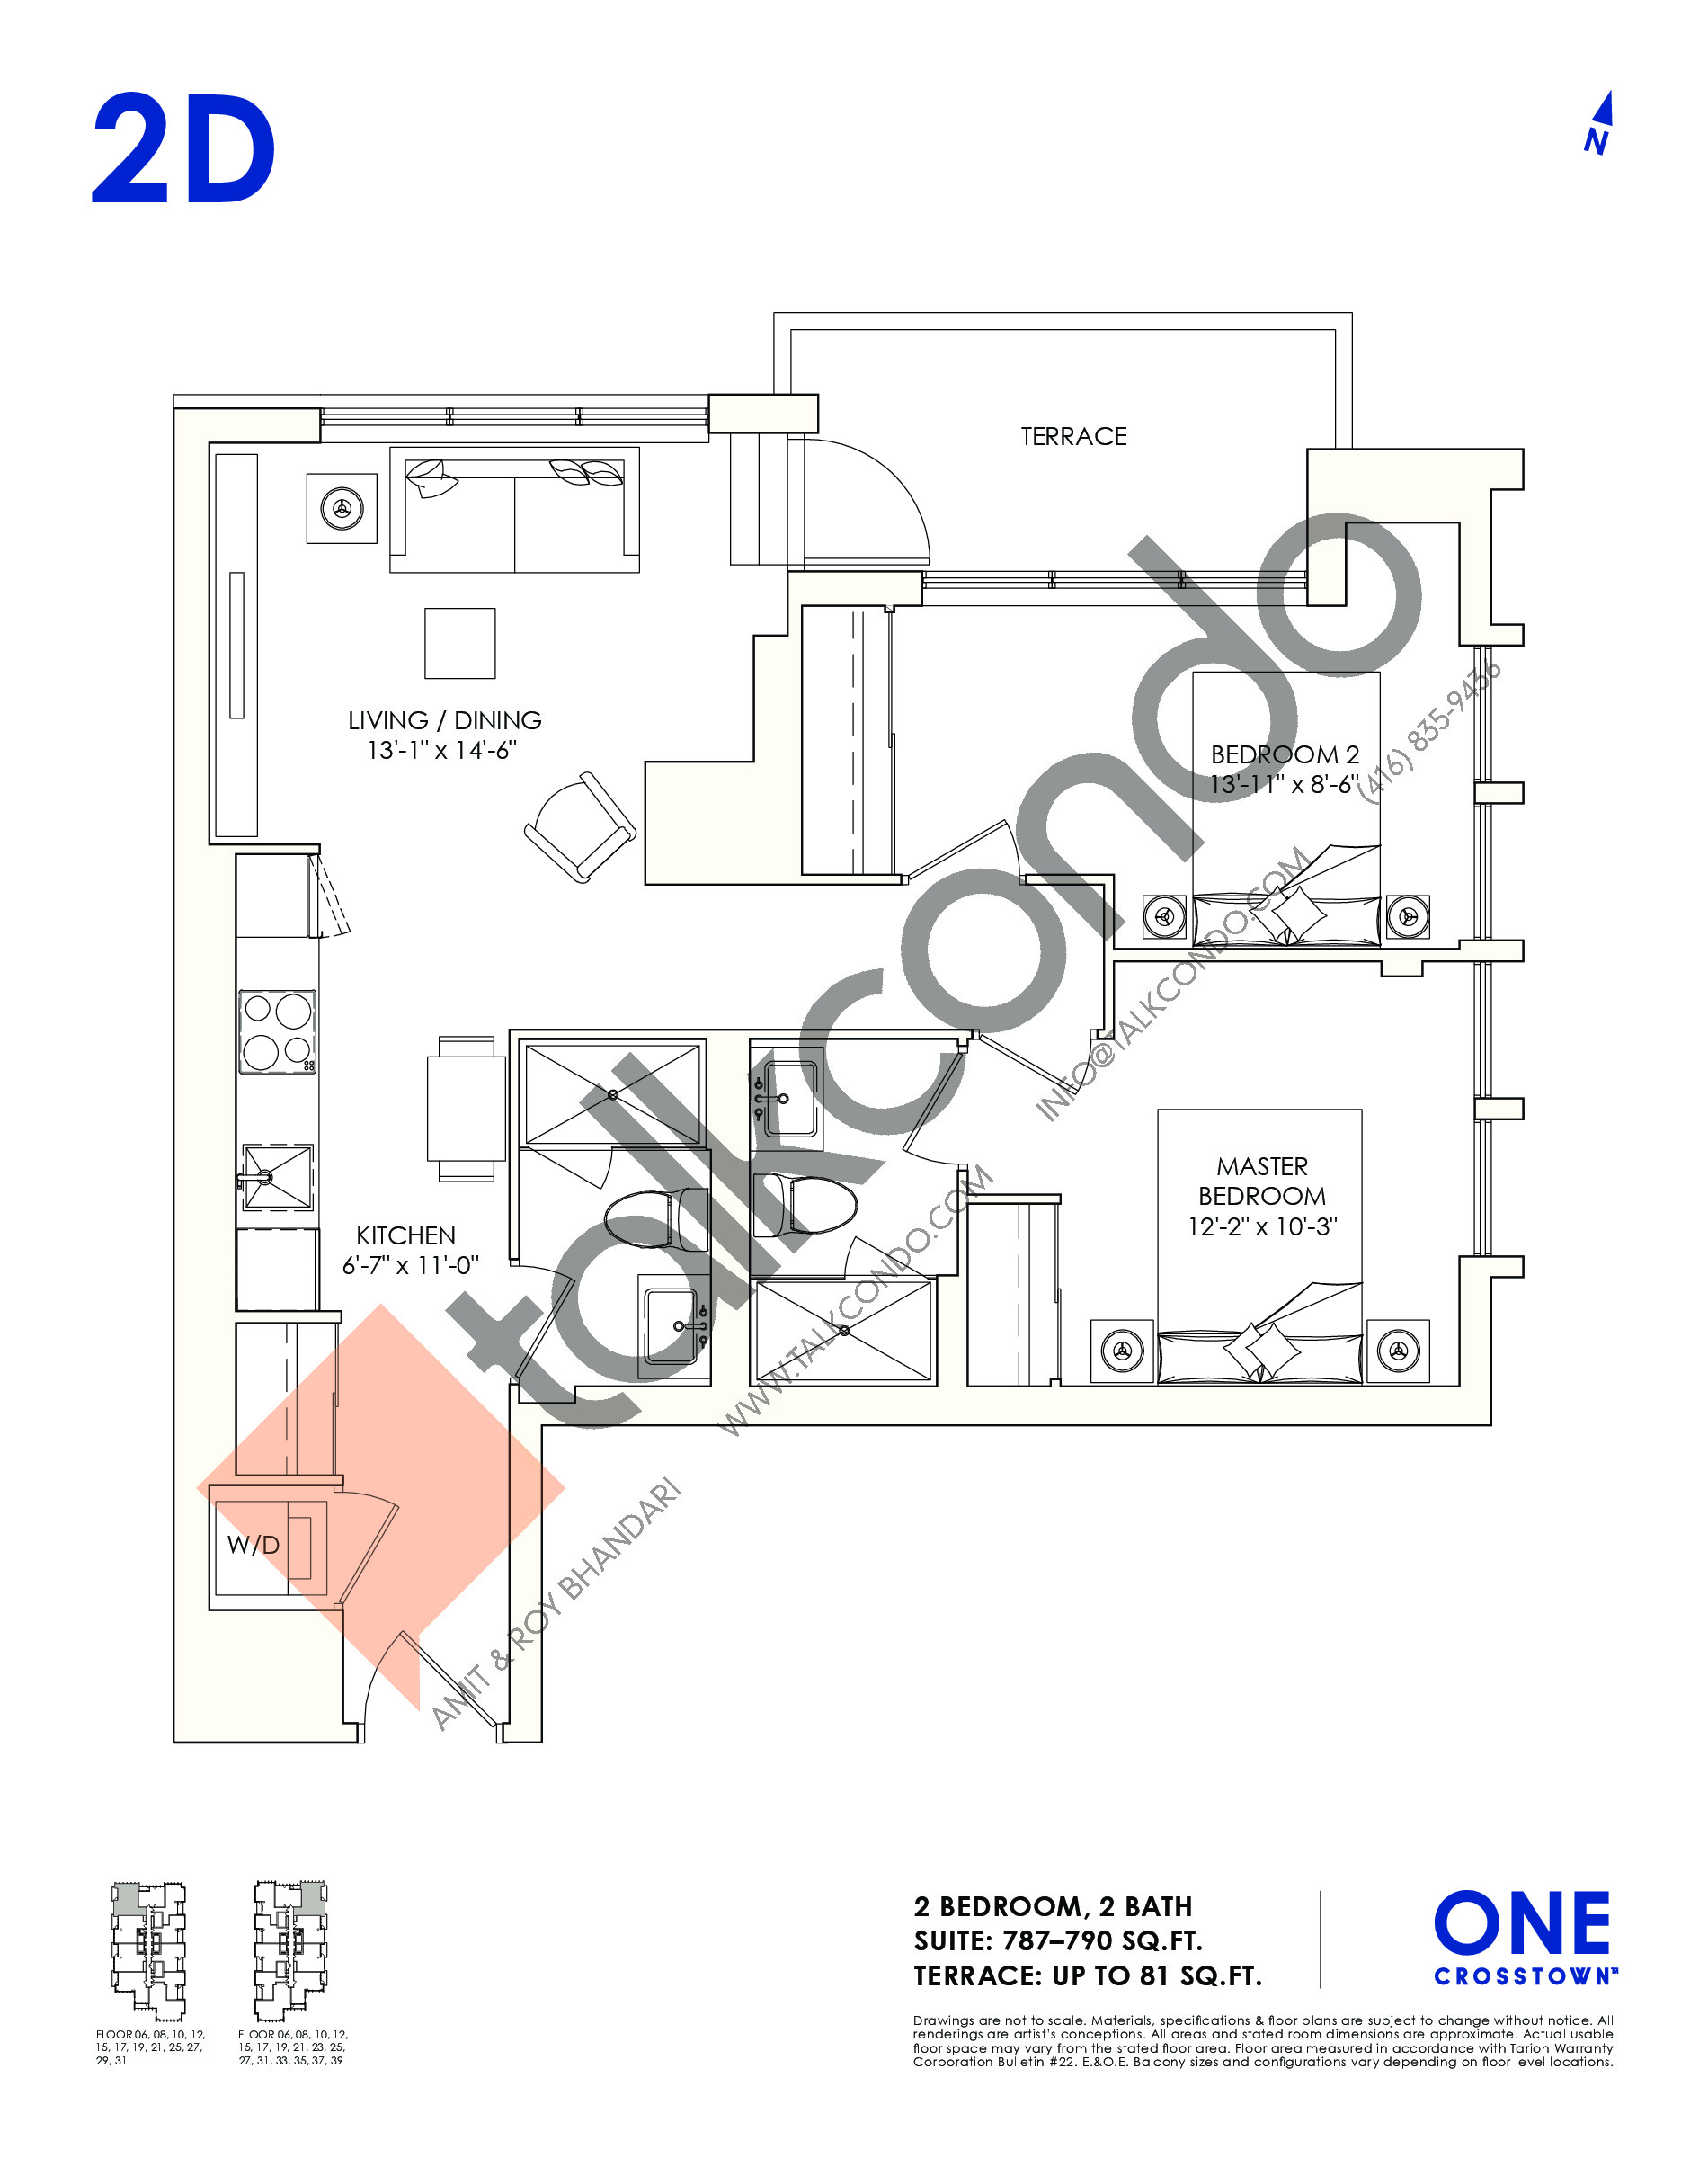 2D Floor Plan at One Crosstown Condos - 790 sq.ft